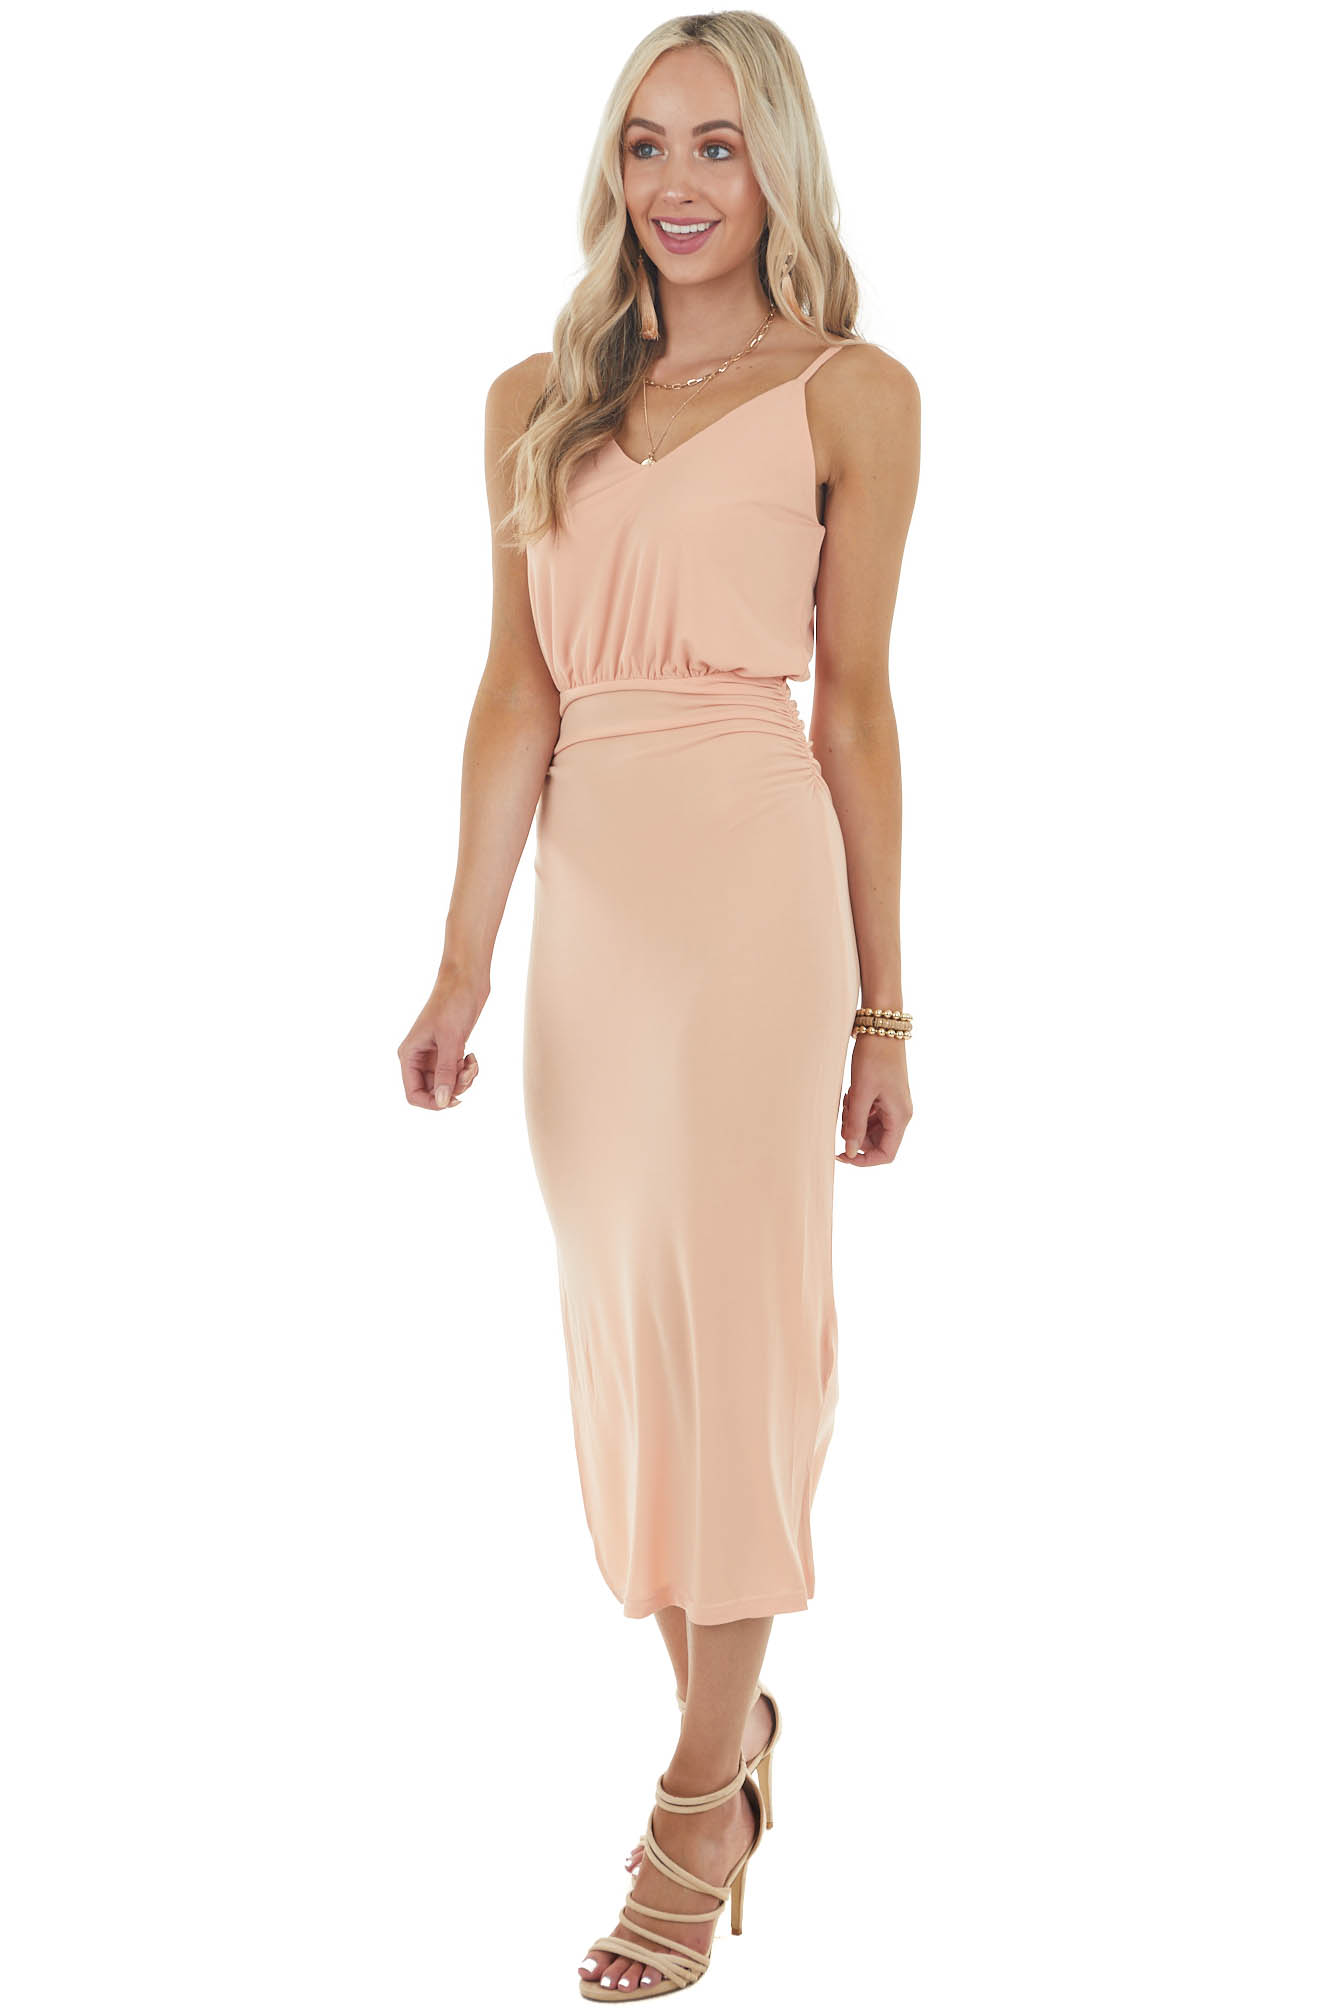 Peach Sleeveless Midi Dress with V Neck and Ruching Detail